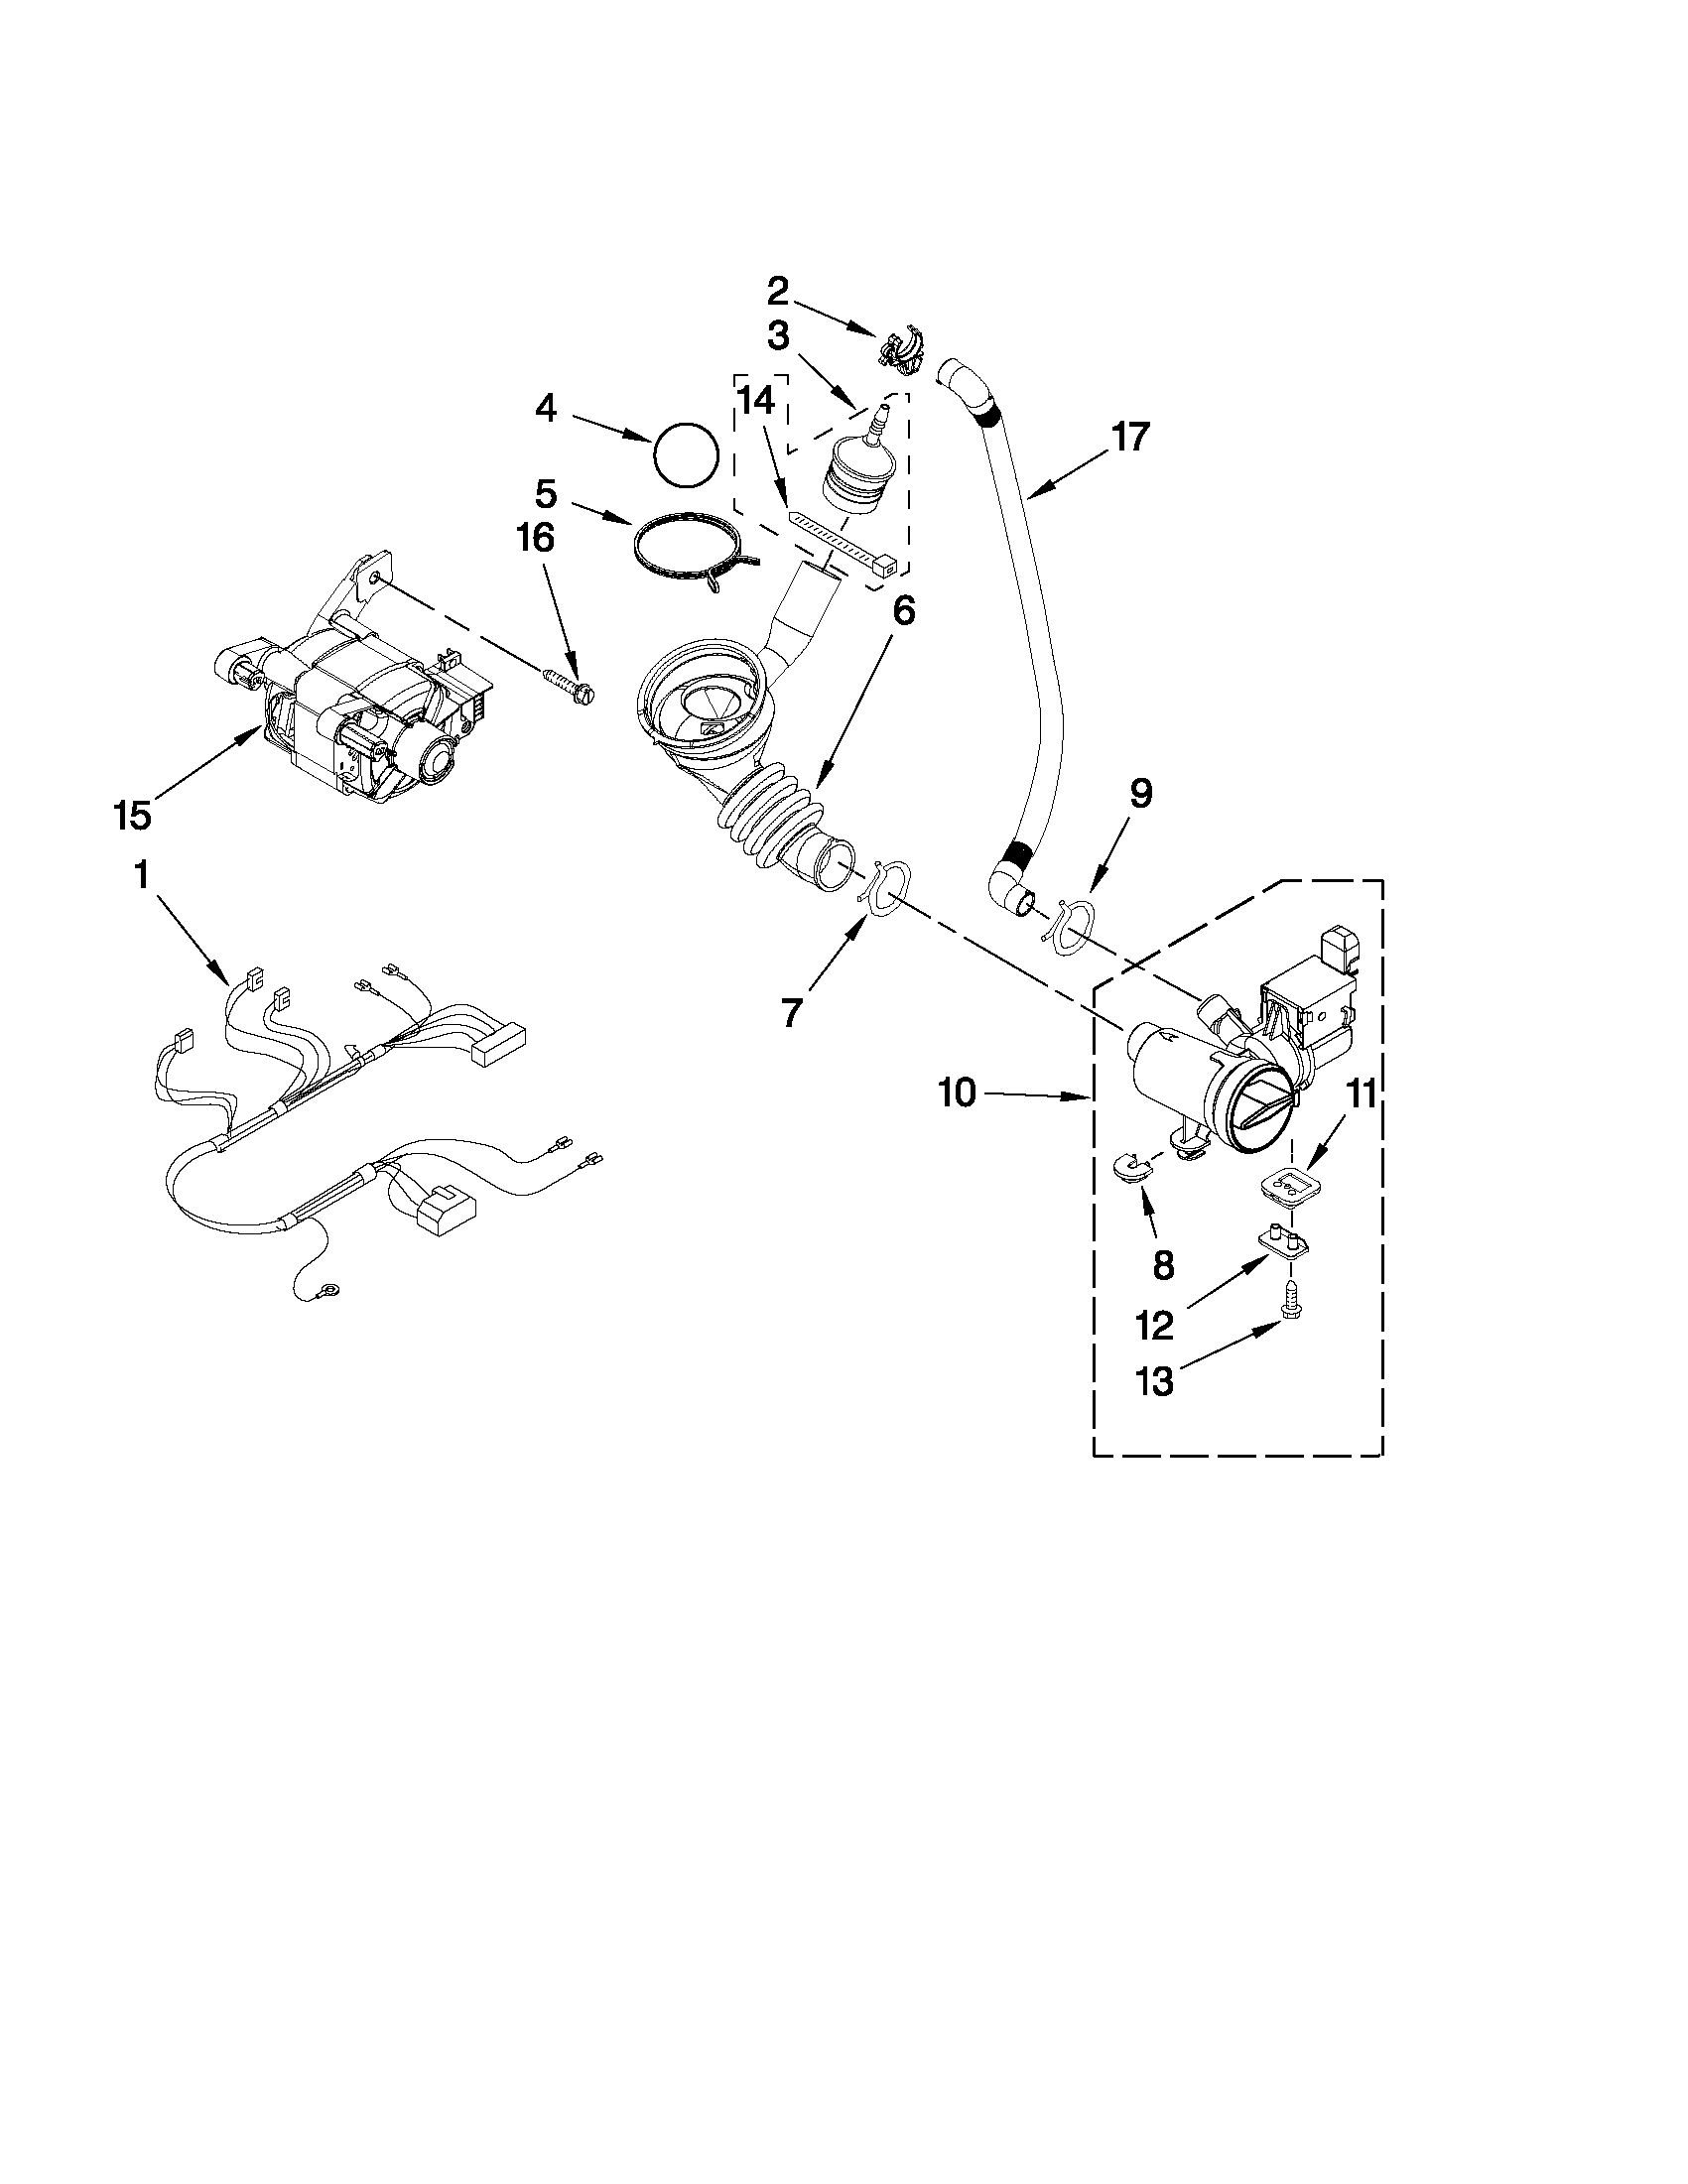 hight resolution of whirlpool wfw9150ww01 pump and motor parts diagram